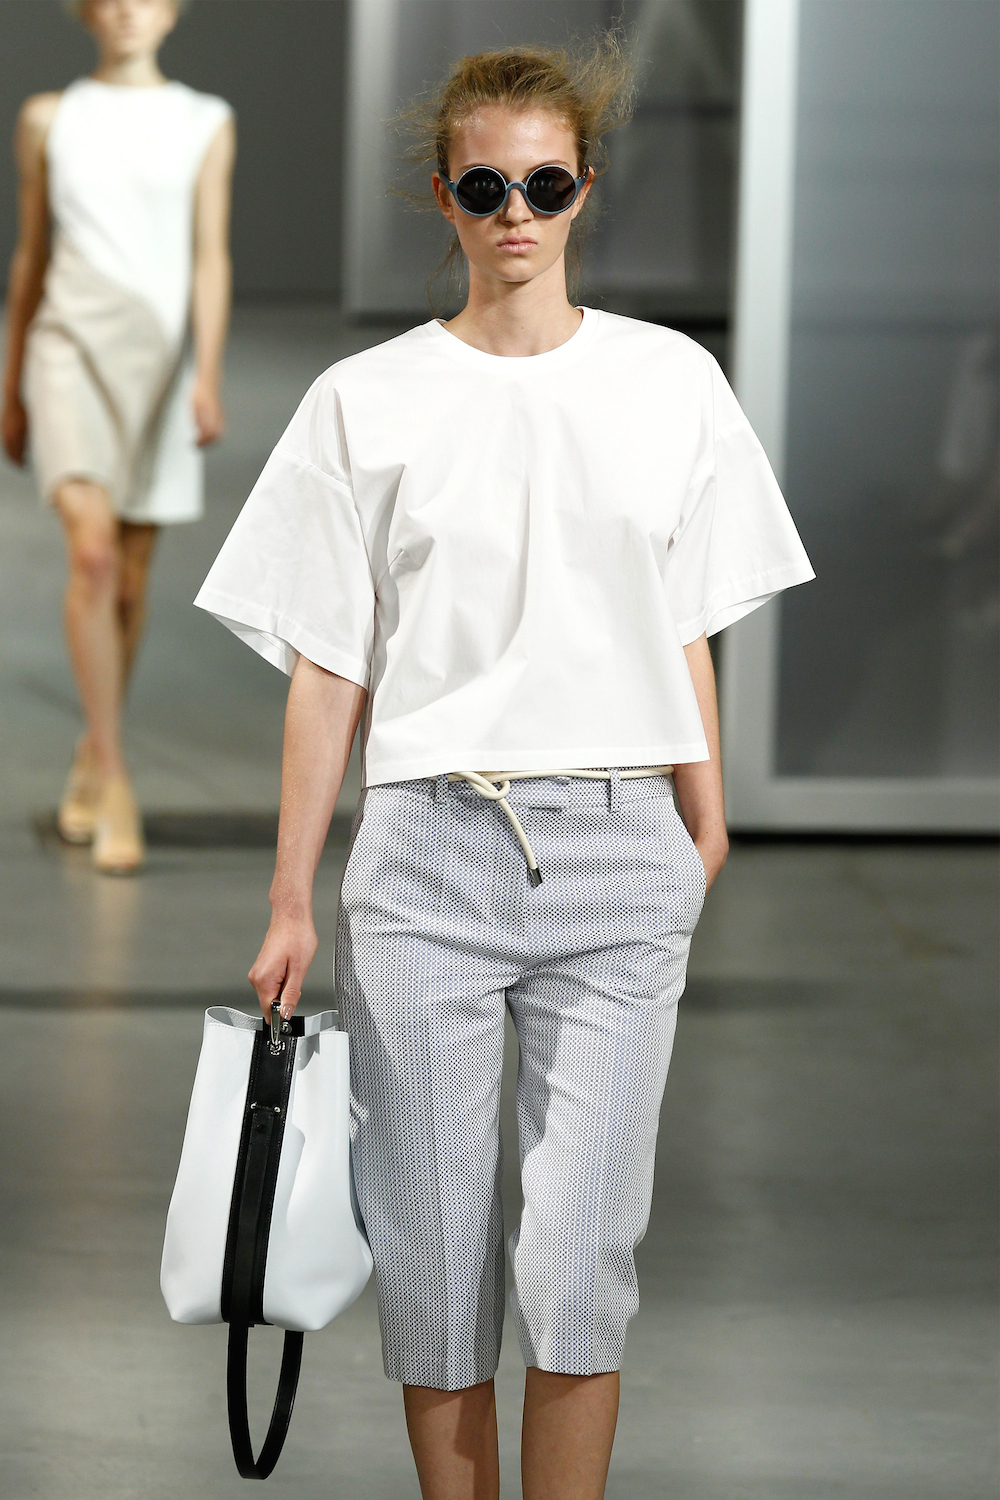 TRESemme at 3.1 Philip Lim Spring Summer 2015 - Runway